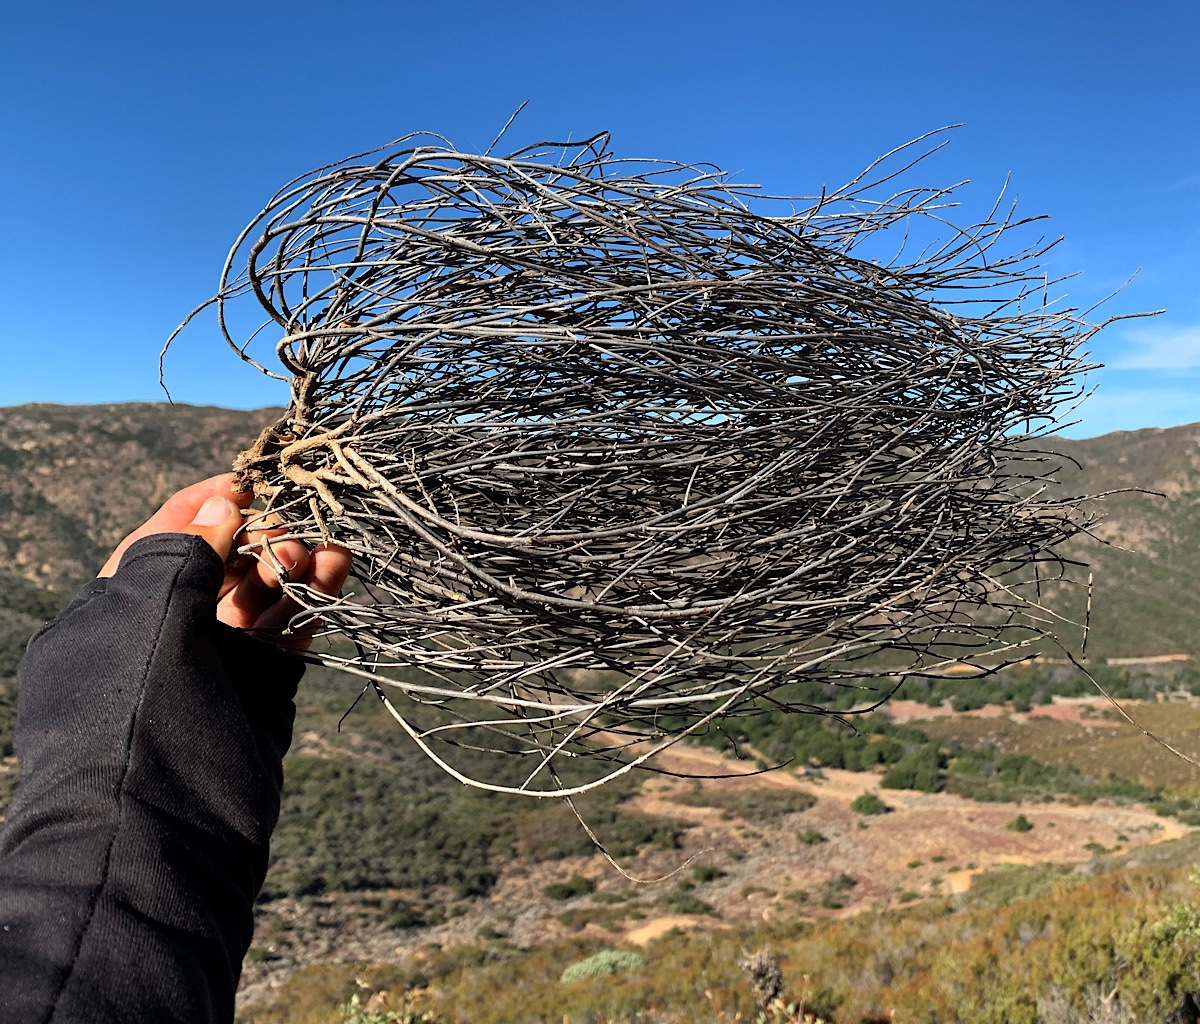 Dried tumbleweeds look like hair blowing in the wind.